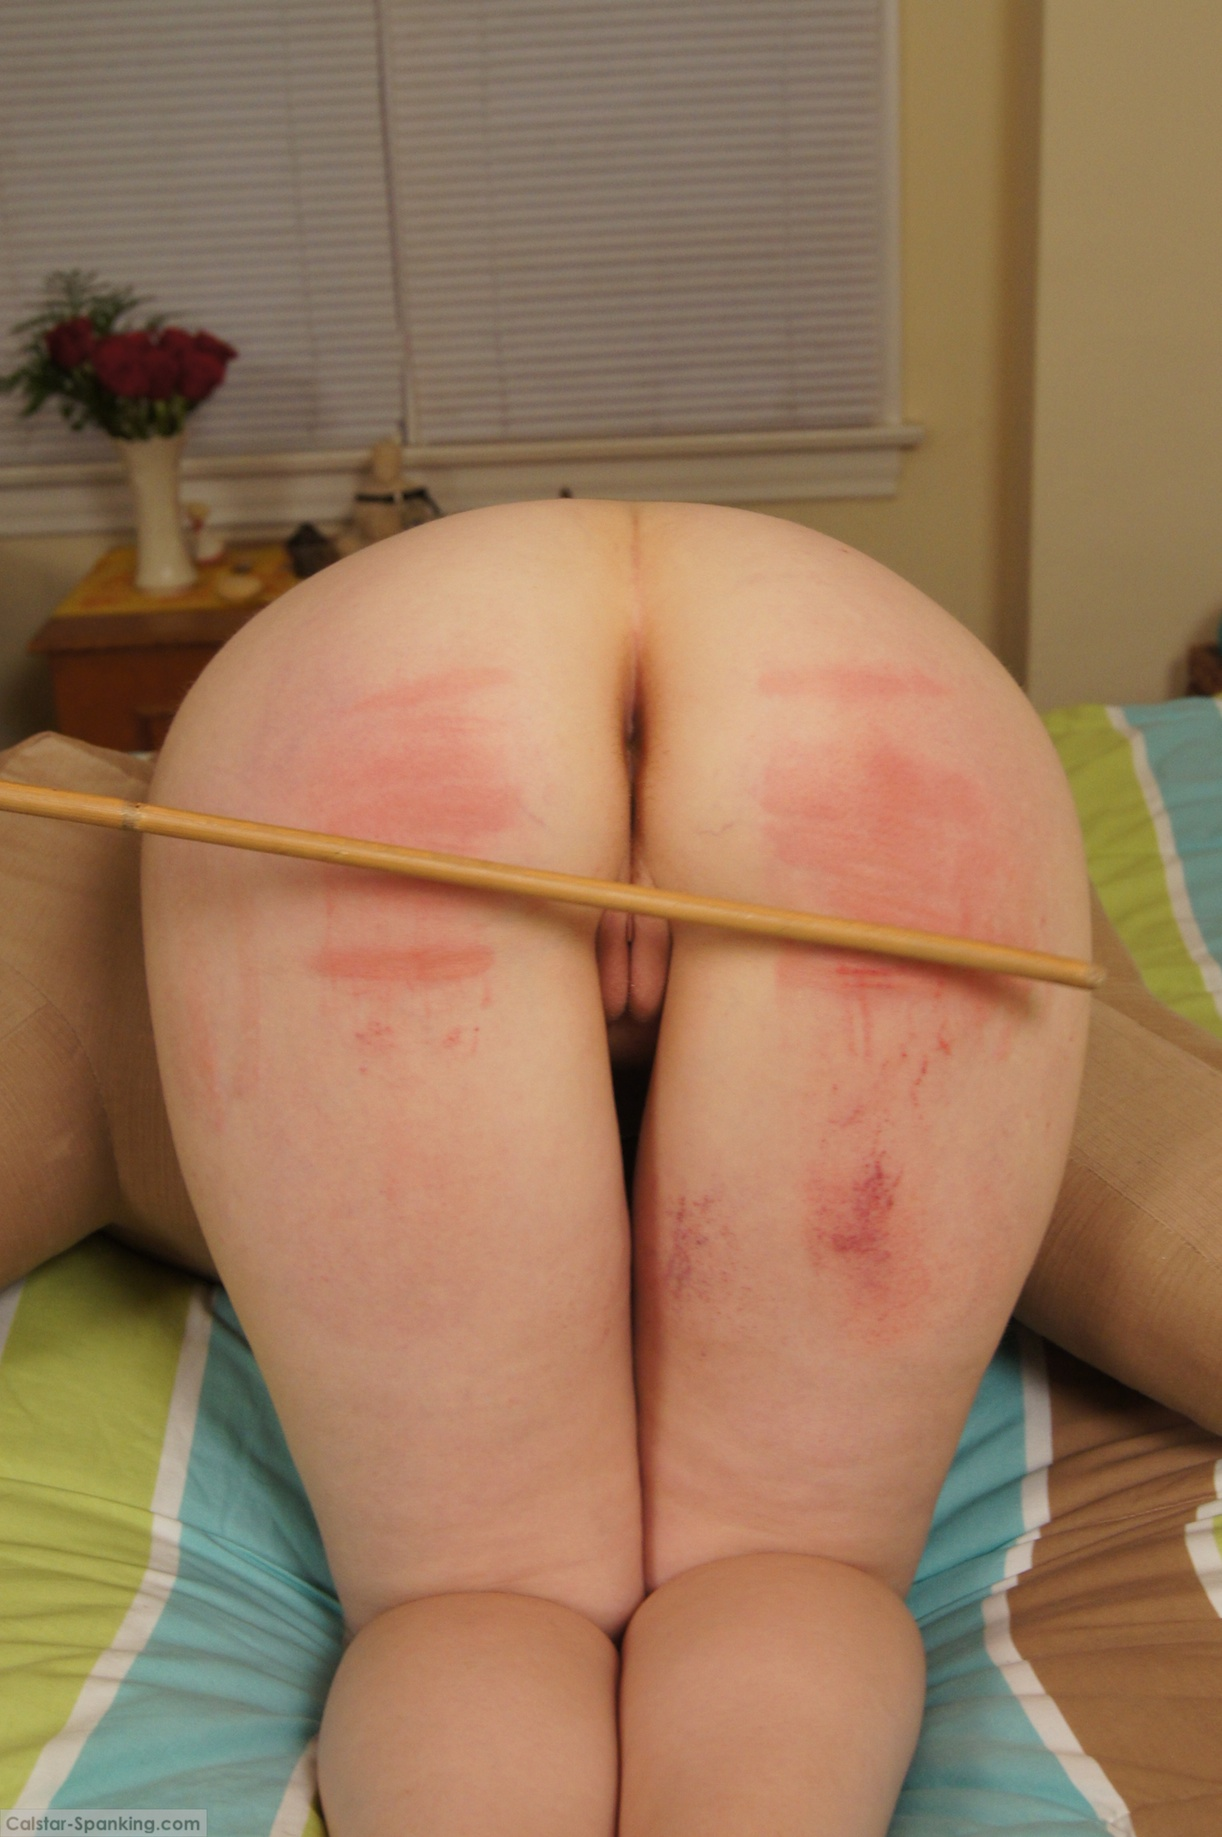 spank blistered buns movies